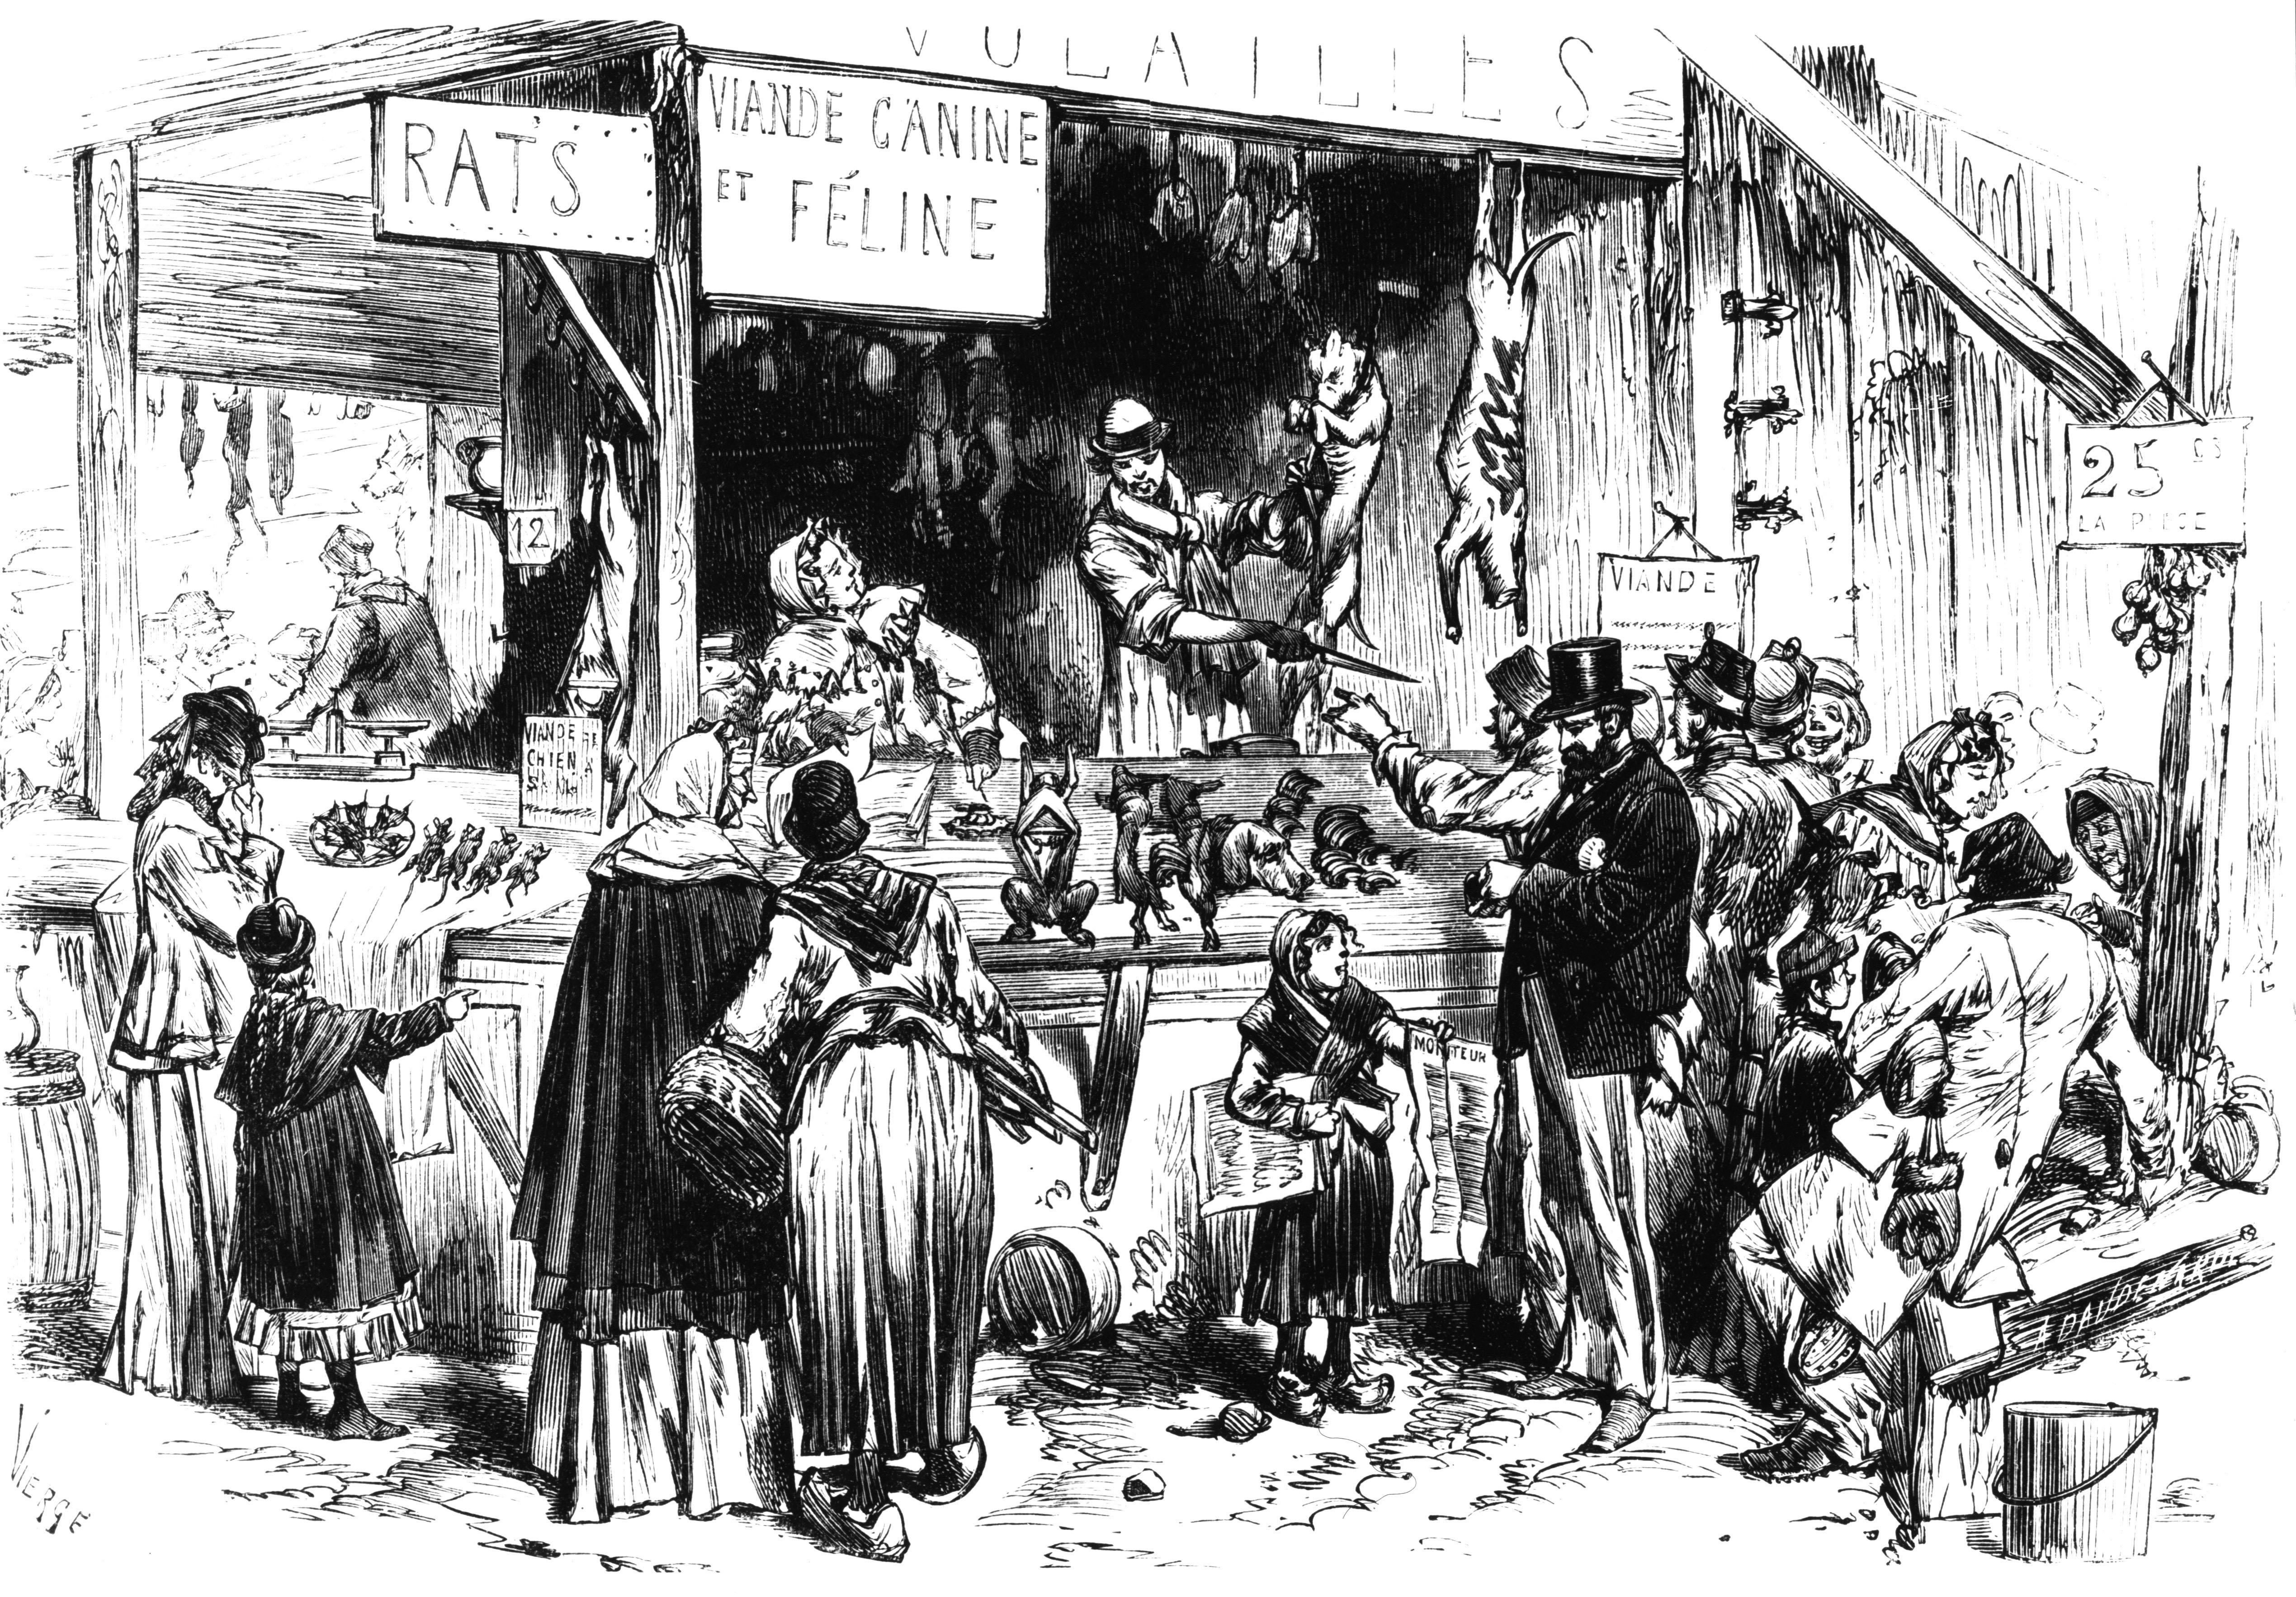 During the Siege of Paris (1870–1871), dogs, cats, and rats were sold at the market. Credit: INTERFOTO / AlamyStock Photo